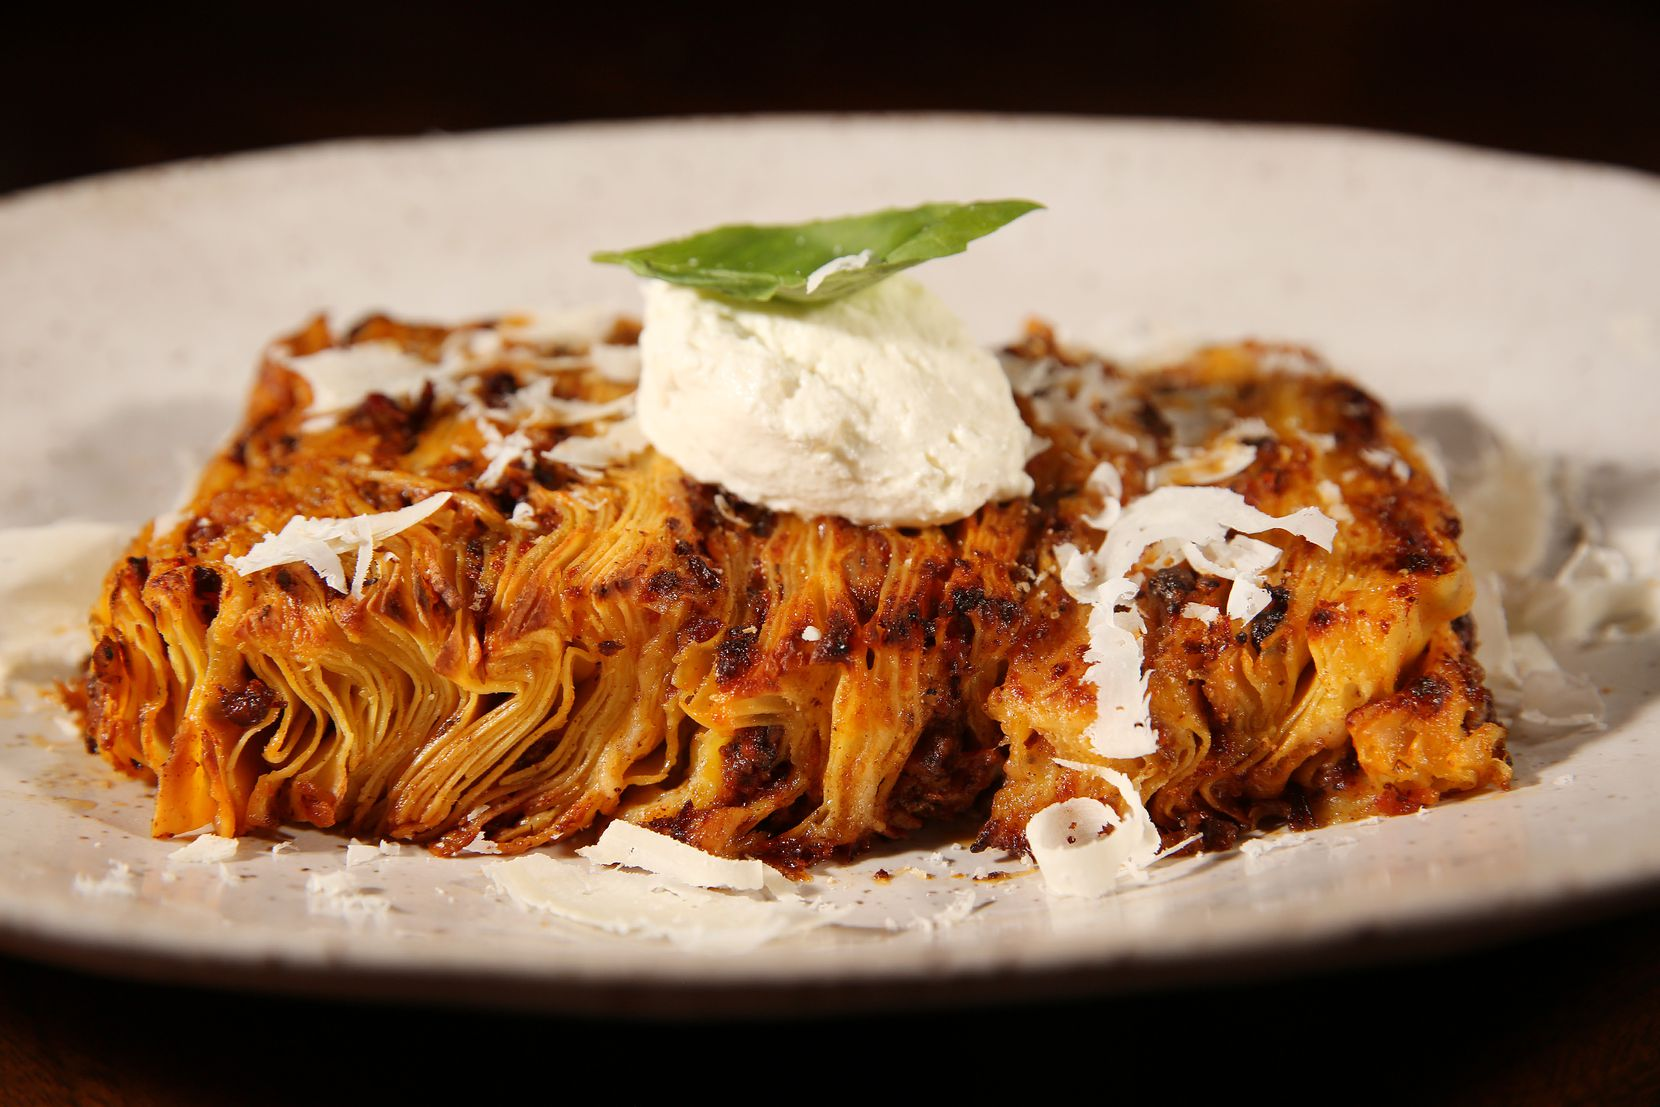 At Fachini, two portions of 50 layers of lasagna are made separately and then placed one on top of the other.